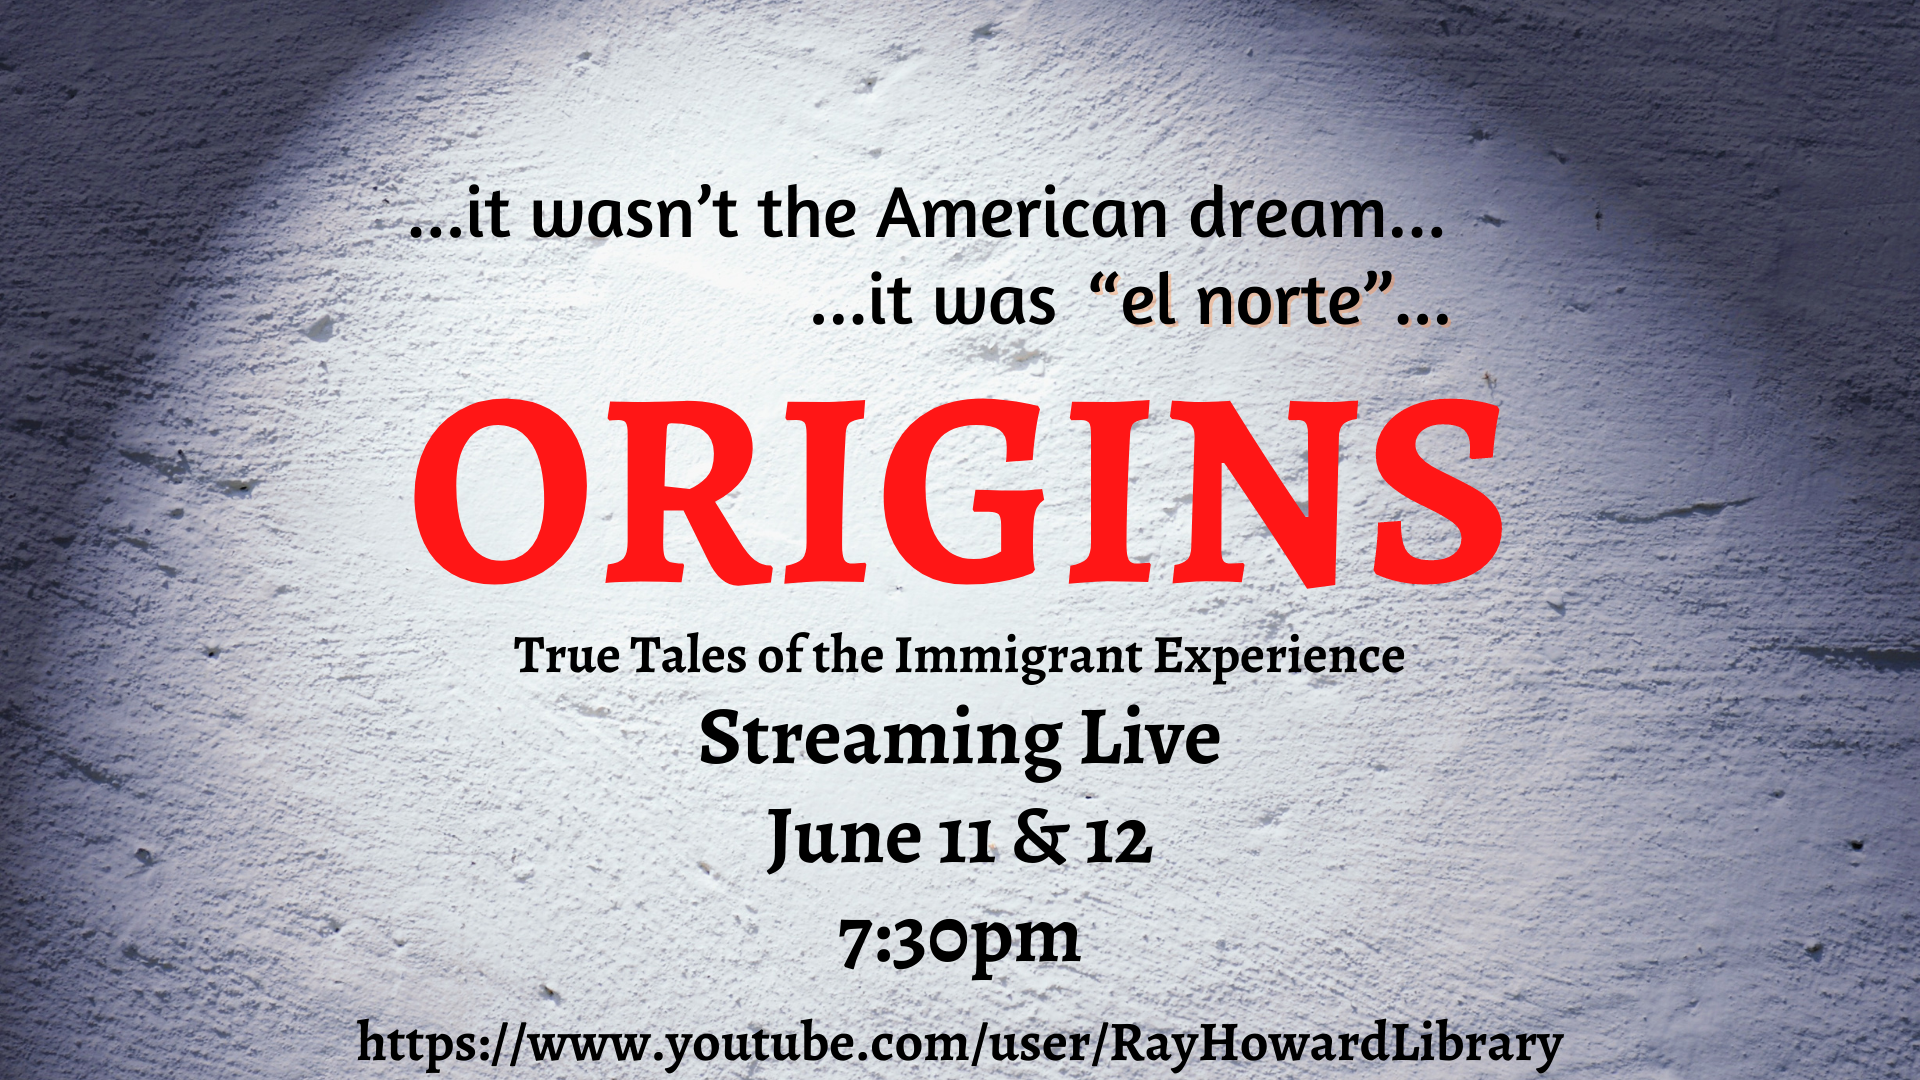 it wasn't the American dream...it was el norte...Origins: True Tales of the Immigrant Experience streaming live June 11 and 12 7:30pm https://www.youtube.com/user/RayHowardLibrary